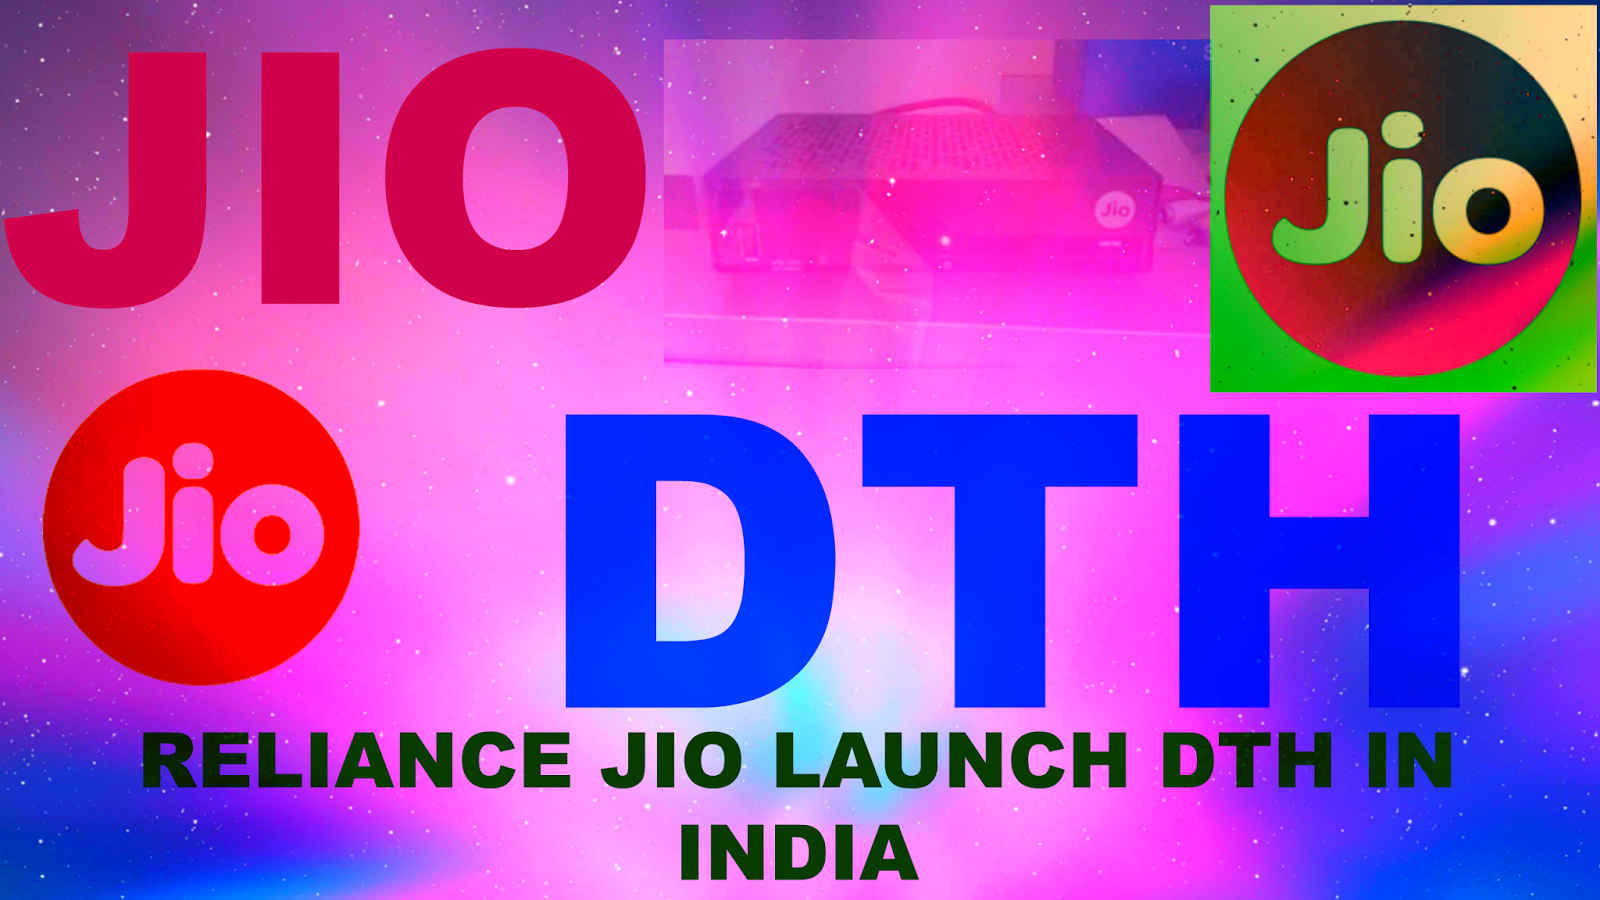 Reliance Jio Dth Set Top Box Price In India ✓ The Mercedes Benz